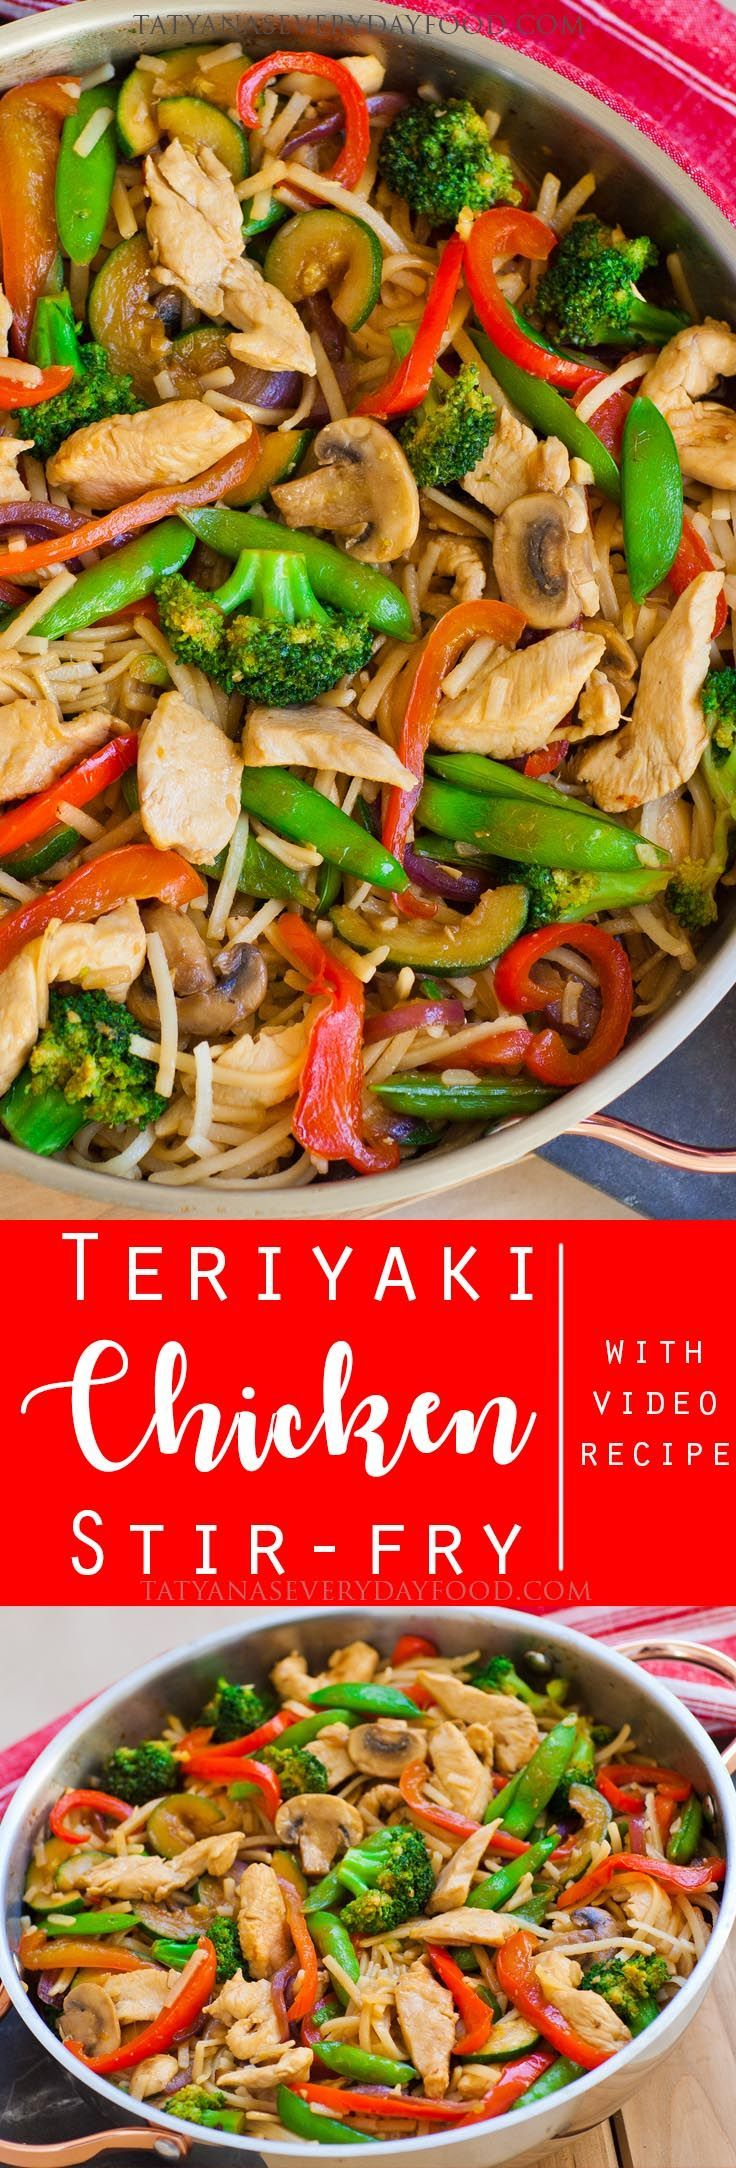 I have a serious weakness for any recipe with the word 'teriyaki' in it! I absolutely love the flavor that it gives to simple ingredients like chicken and veggies. I make my teriyaki chicken stir-fry with a home-made teriyaki sauce, chicken breast or thigh, and tons of veggies! This recipe is one of our favorites […]